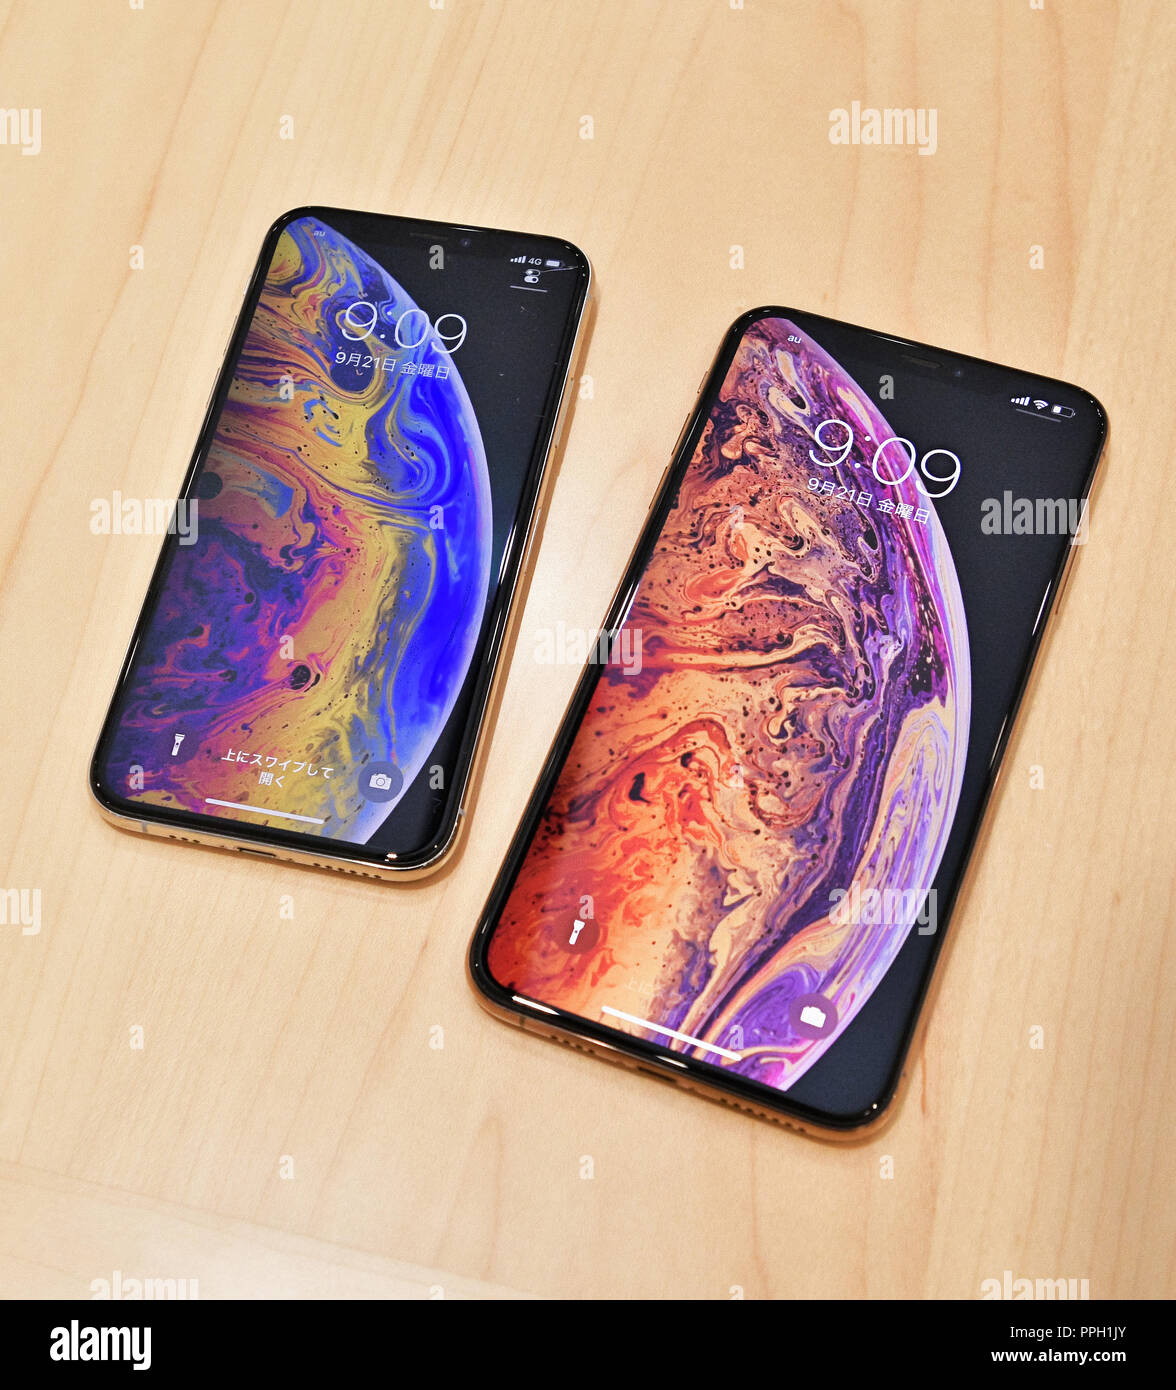 iPhone Xs, Apple, KDDI, au, September 21, 2018, Tokyo, Japan : The new iPhone Xs and Xs Max (R) are displayed during launch day at the KDDI's au Shinjuku store in Tokyo, Japan, on September 21, 2018. Credit: AFLO/Alamy Live News - Stock Image